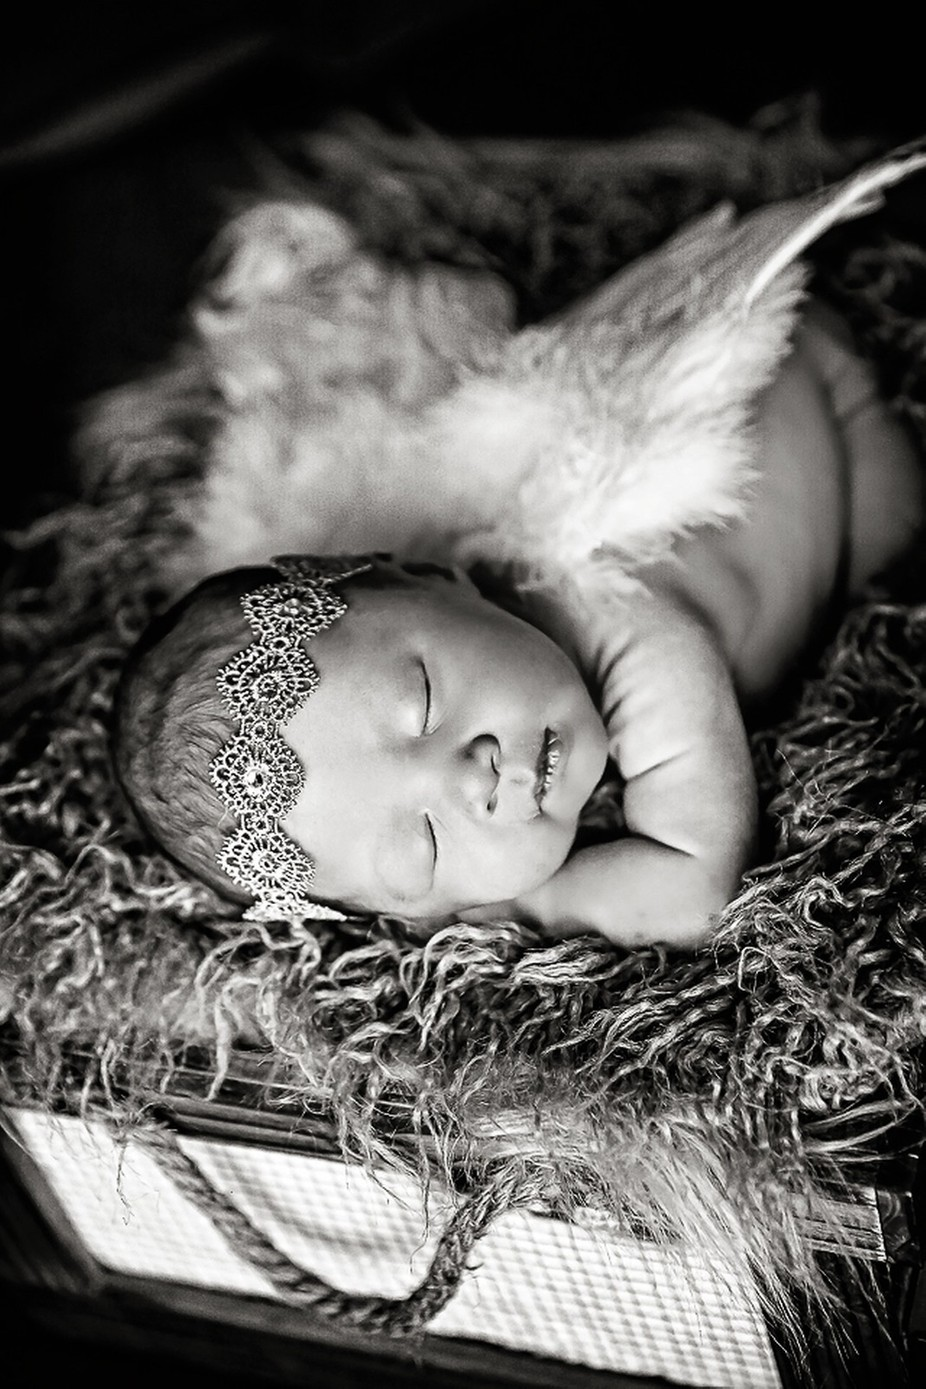 Sleeping sweetly by vanessasiggardkay - Anything Babies Photo Contest